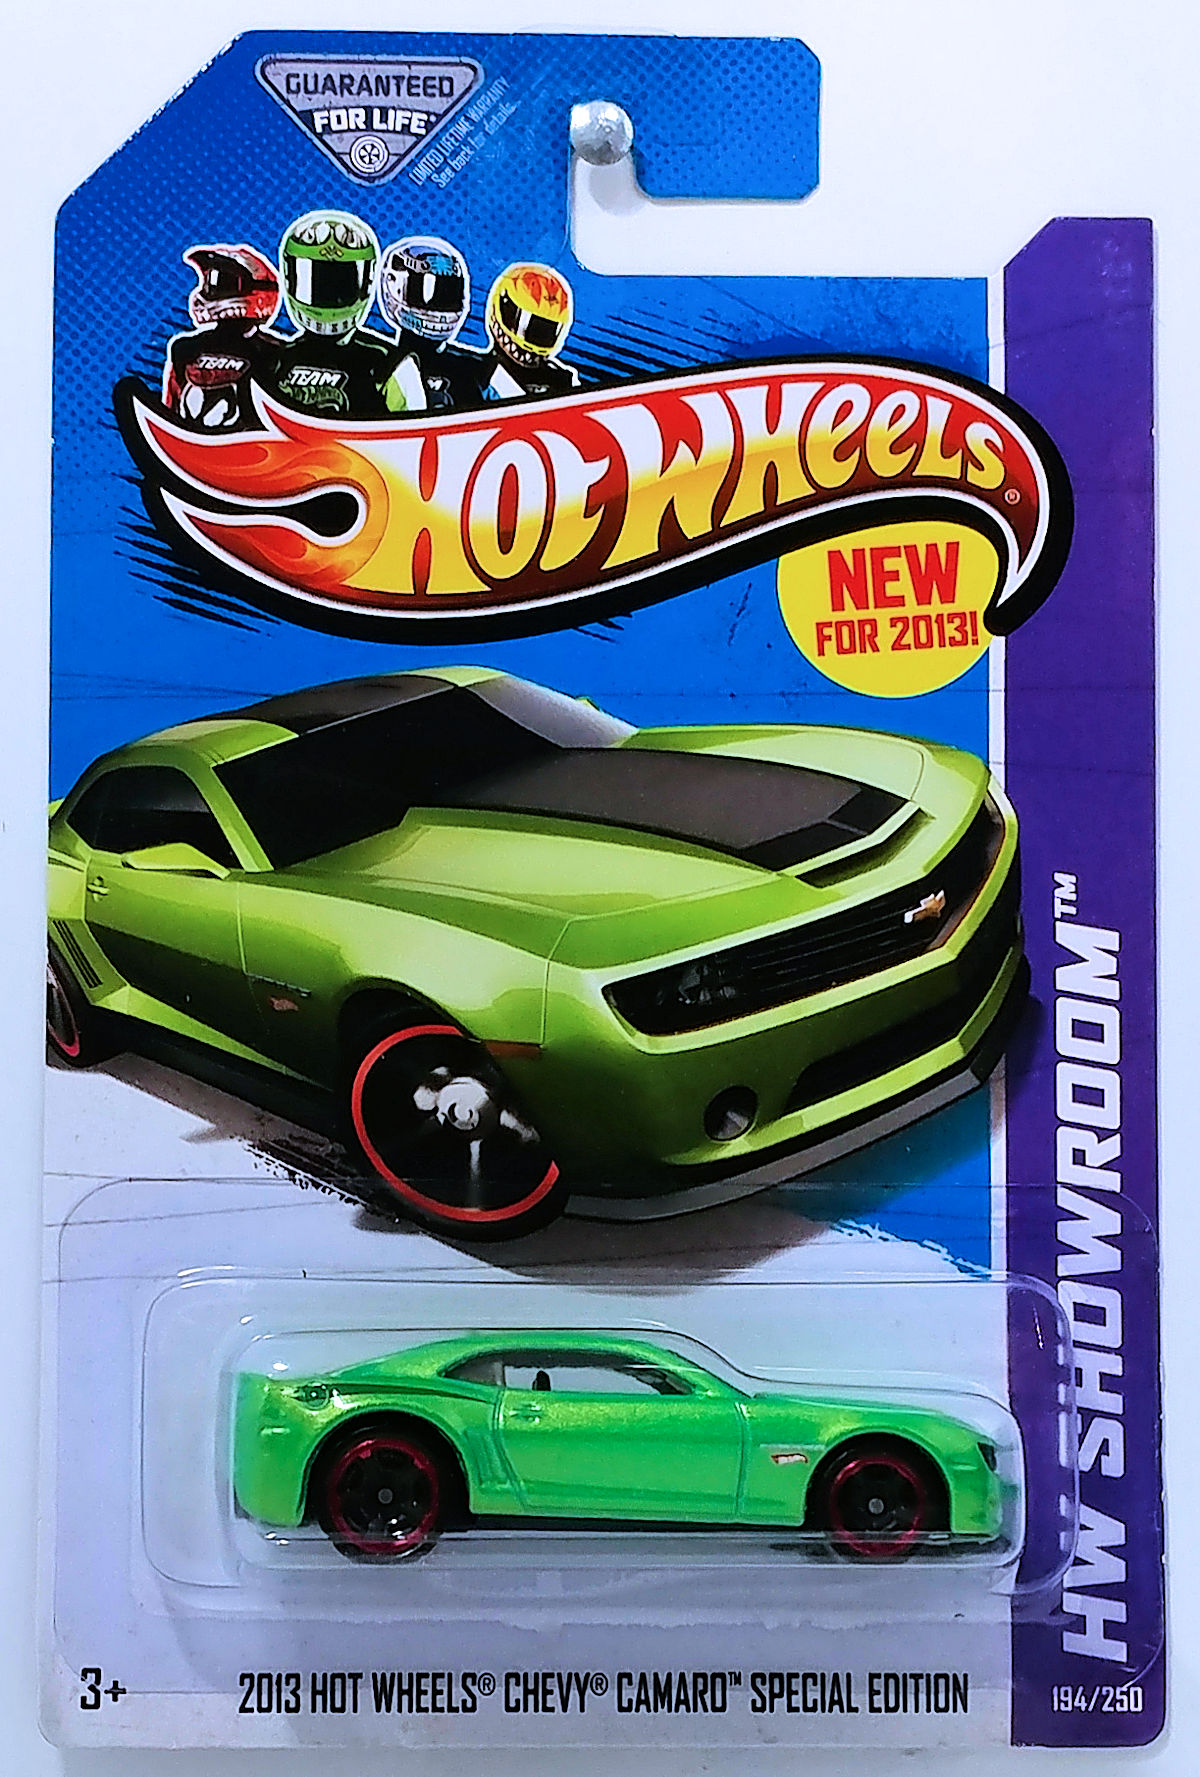 2013 hot wheels chevy camaro special edition model cars hobbydb. Black Bedroom Furniture Sets. Home Design Ideas